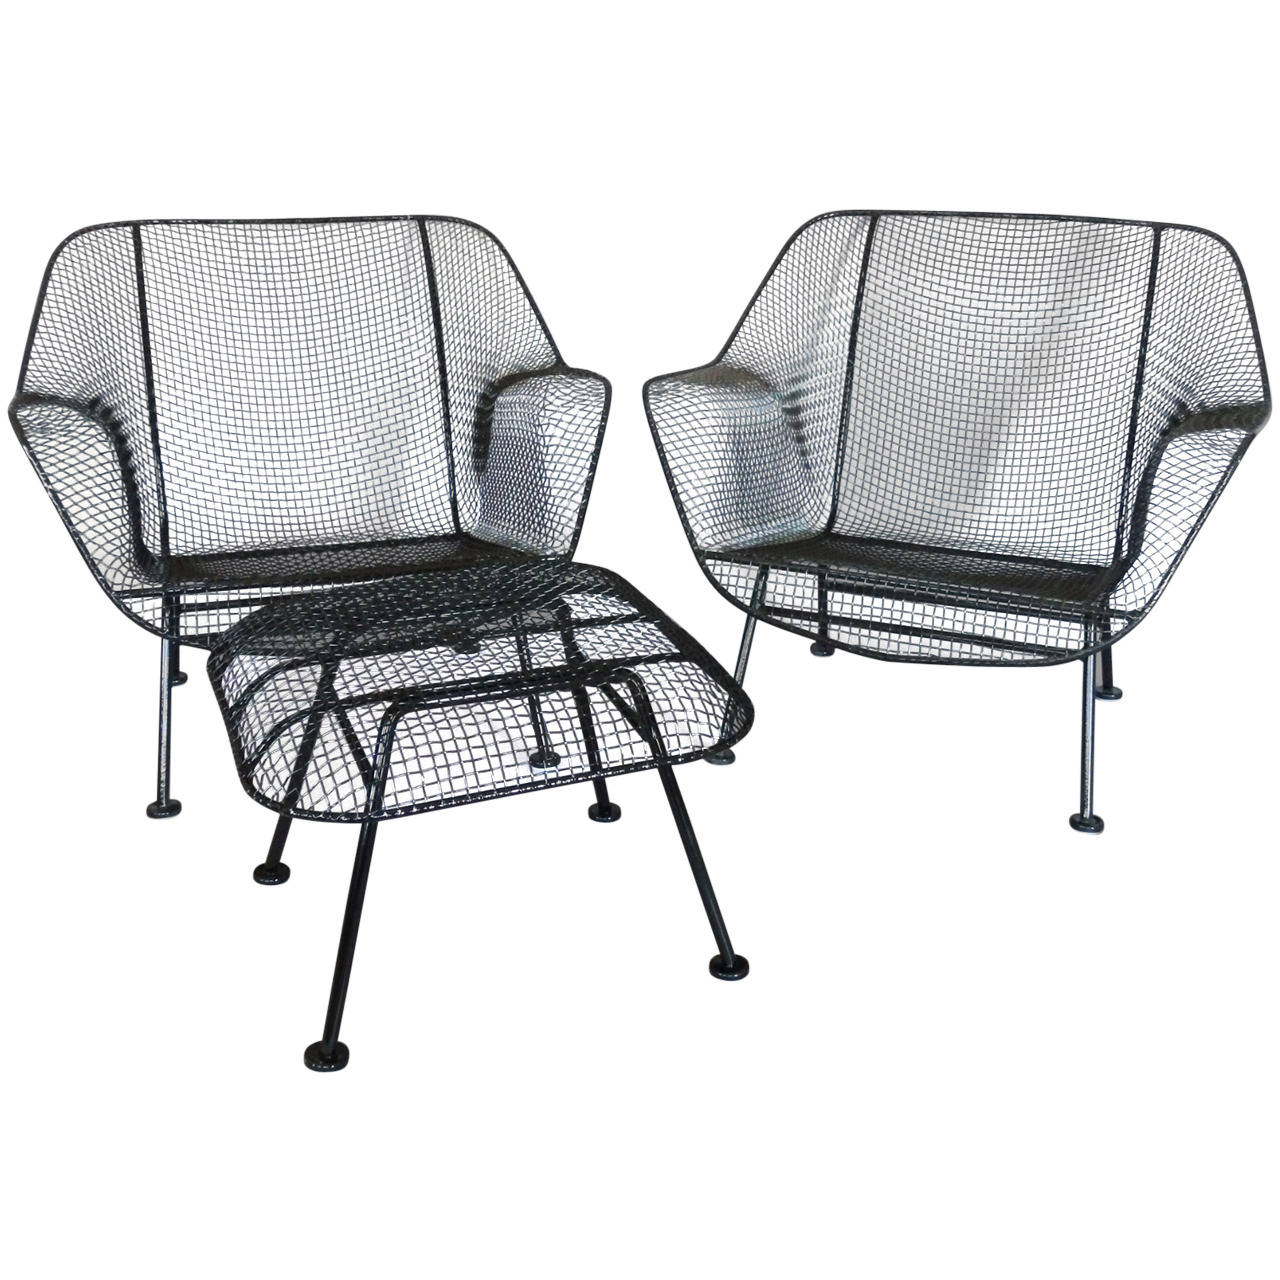 Pair of woodard wrought iron with mesh lounge chairs at for Woodard outdoor furniture